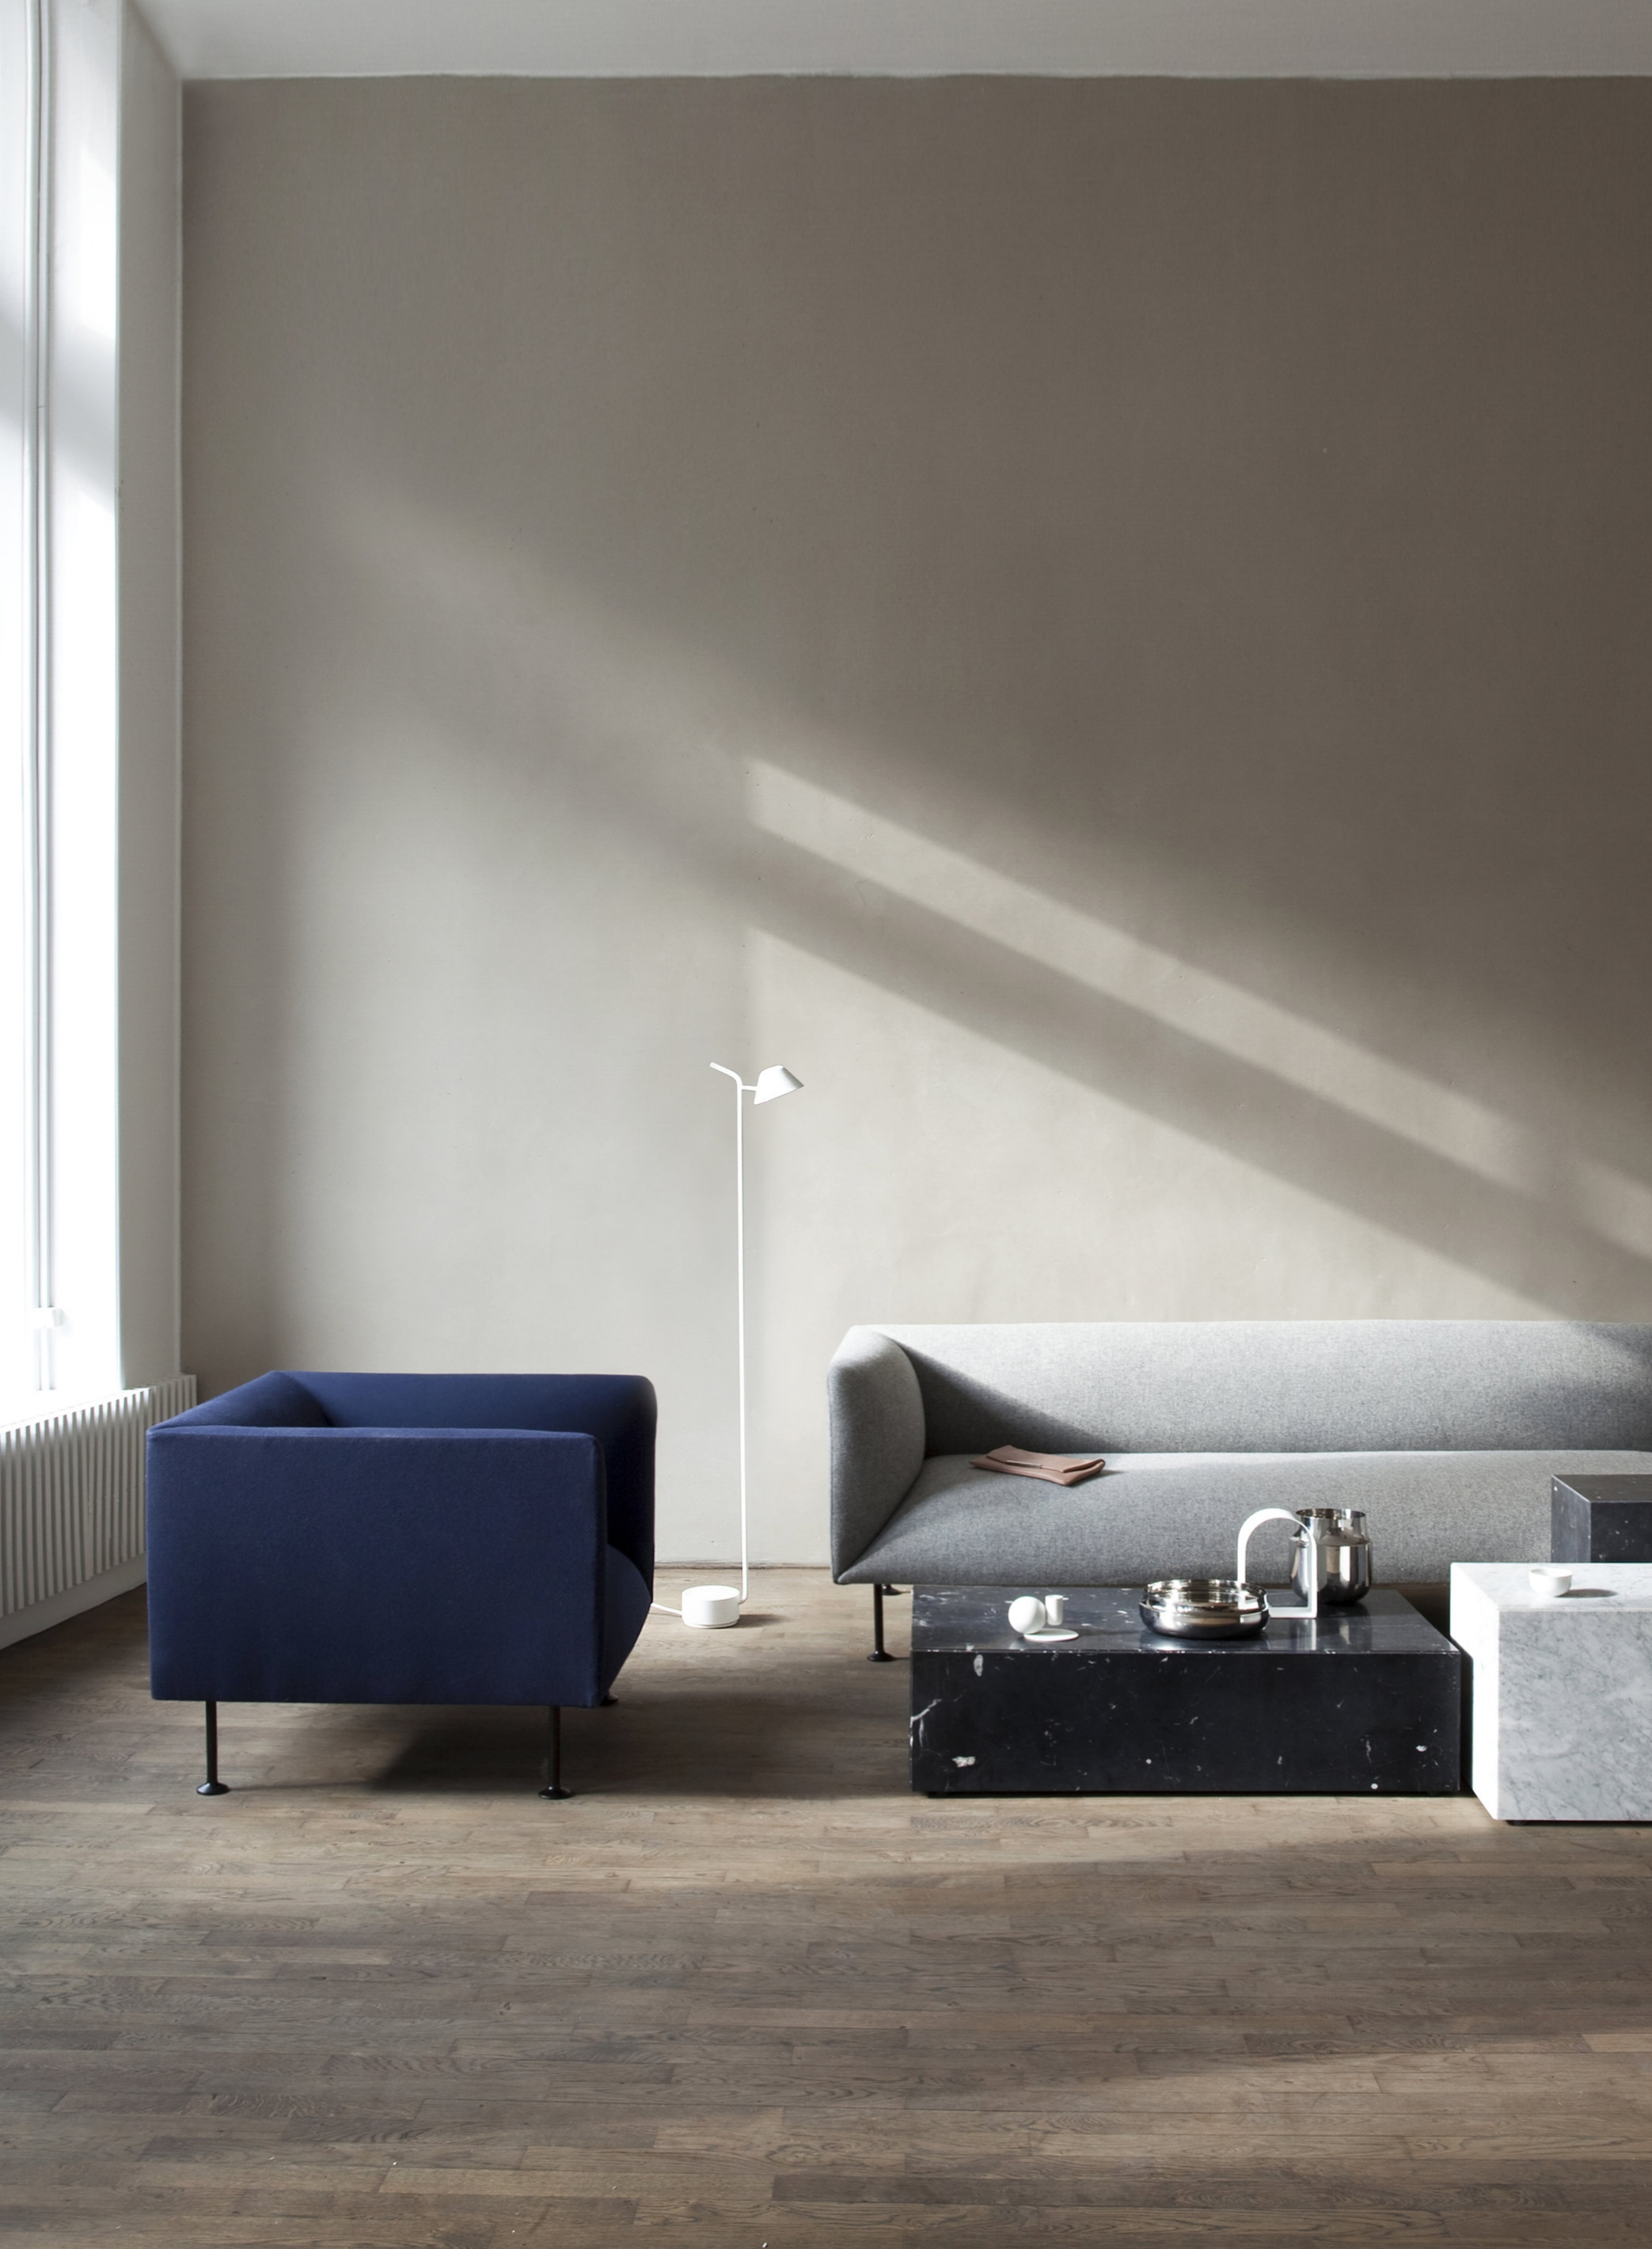 Sofa Berlin Design 3 Seater Sofa By Iskos Berlin Pale Grey Design Cove